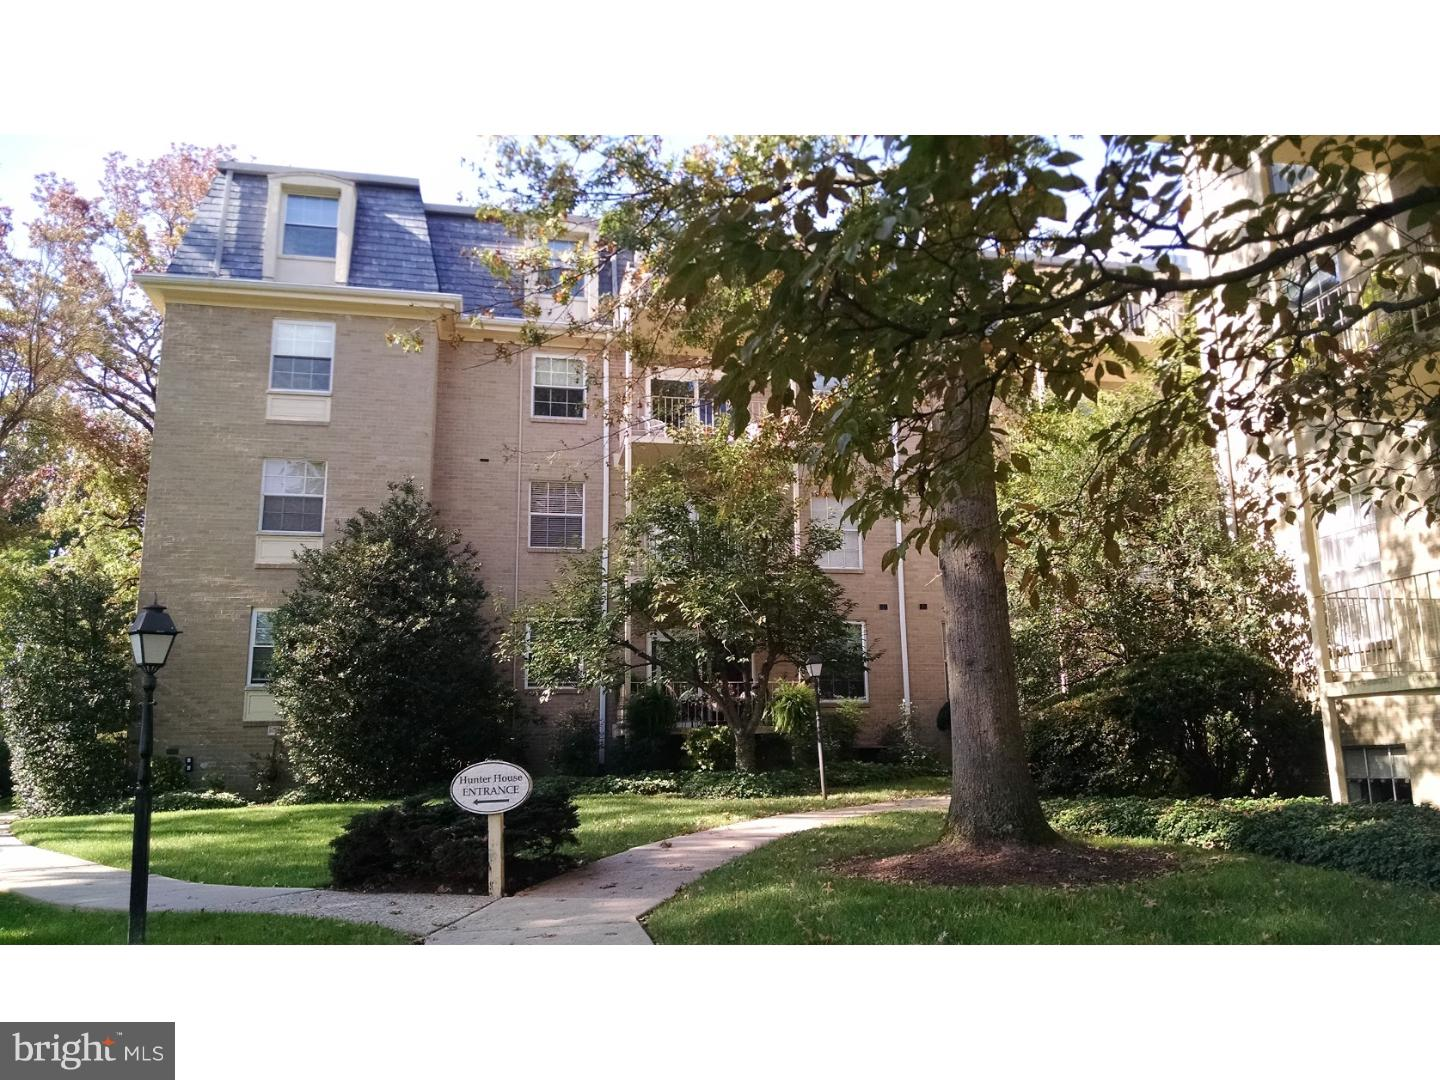 449 W Montgomery Avenue #407 Haverford, PA 19041